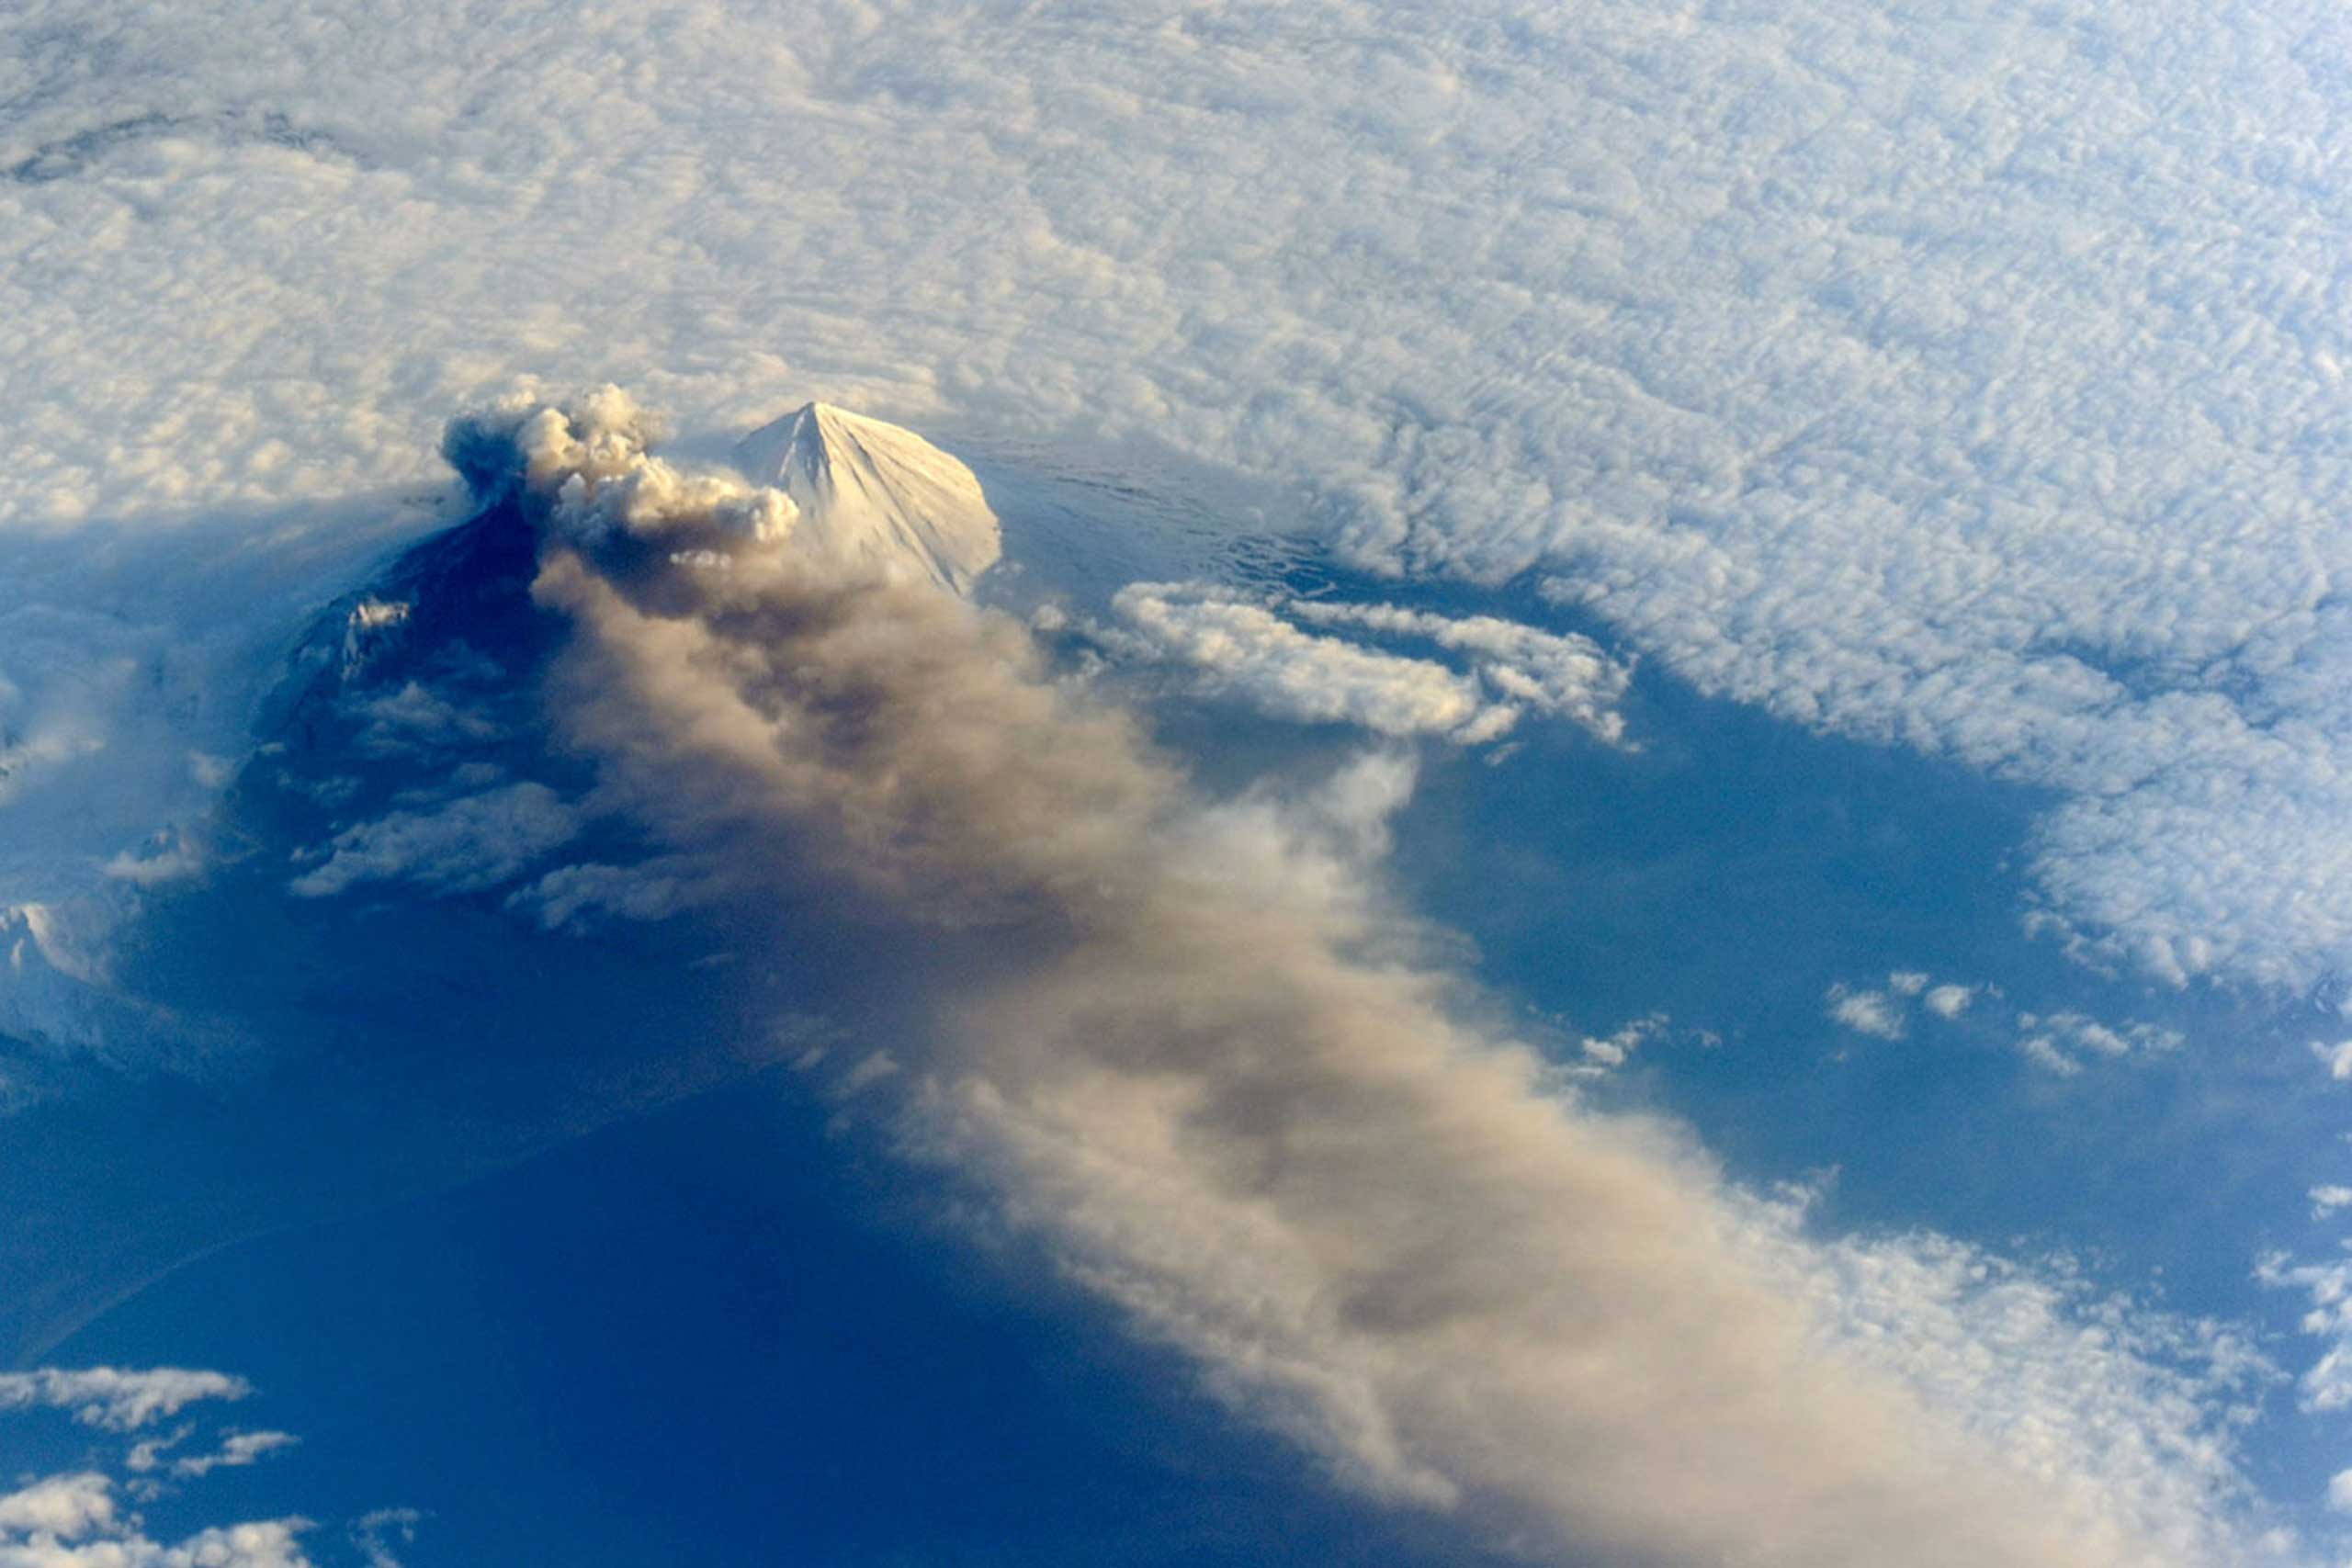 Astronauts aboard the International Space Station photographed the Pavlof Volcano on May 18, 2013. The volcano jetted lava into the air and spewed an ash cloud 20,000 feet high.